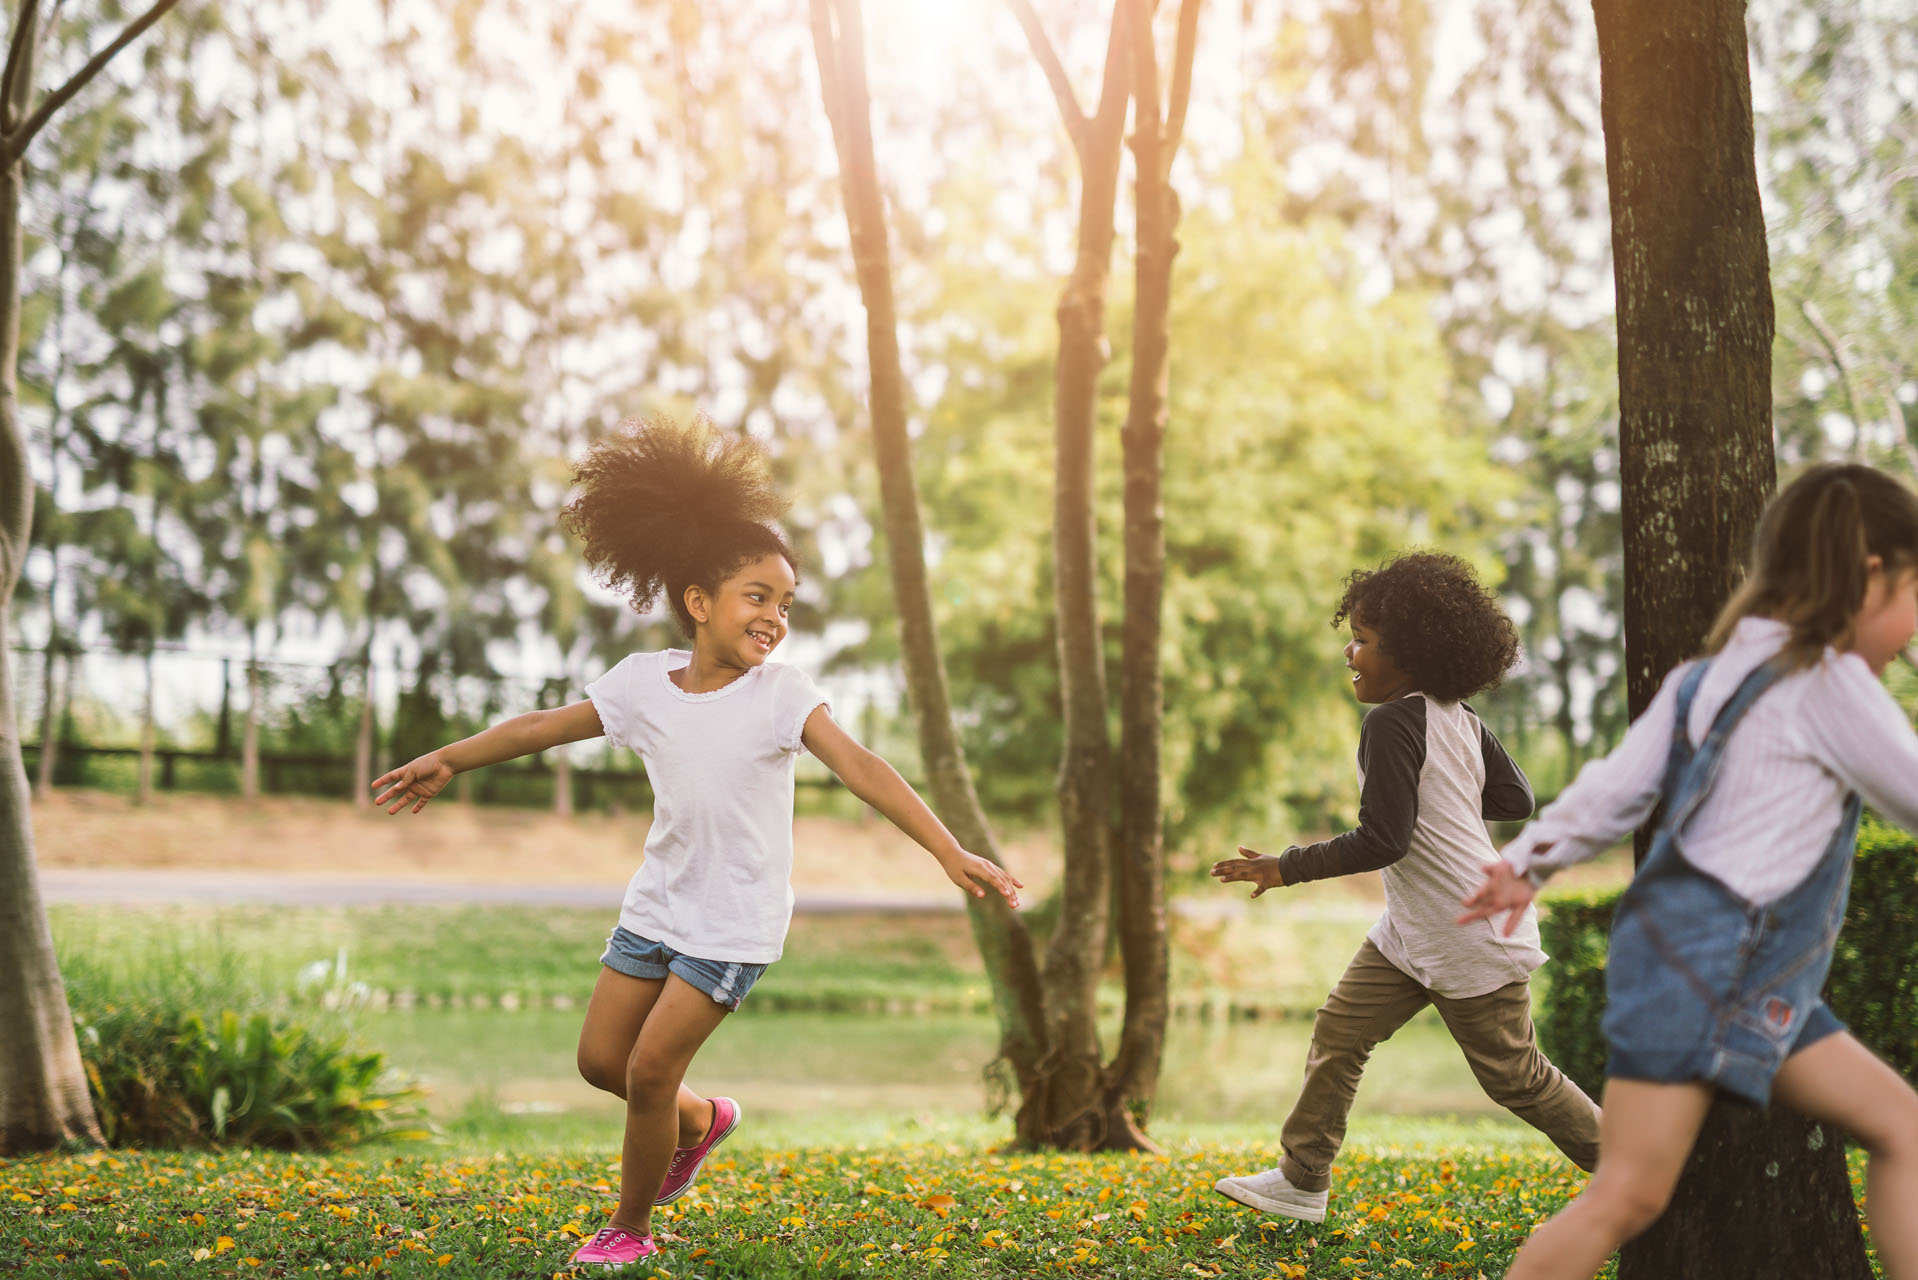 Do older siblings have too much influence on younger ones